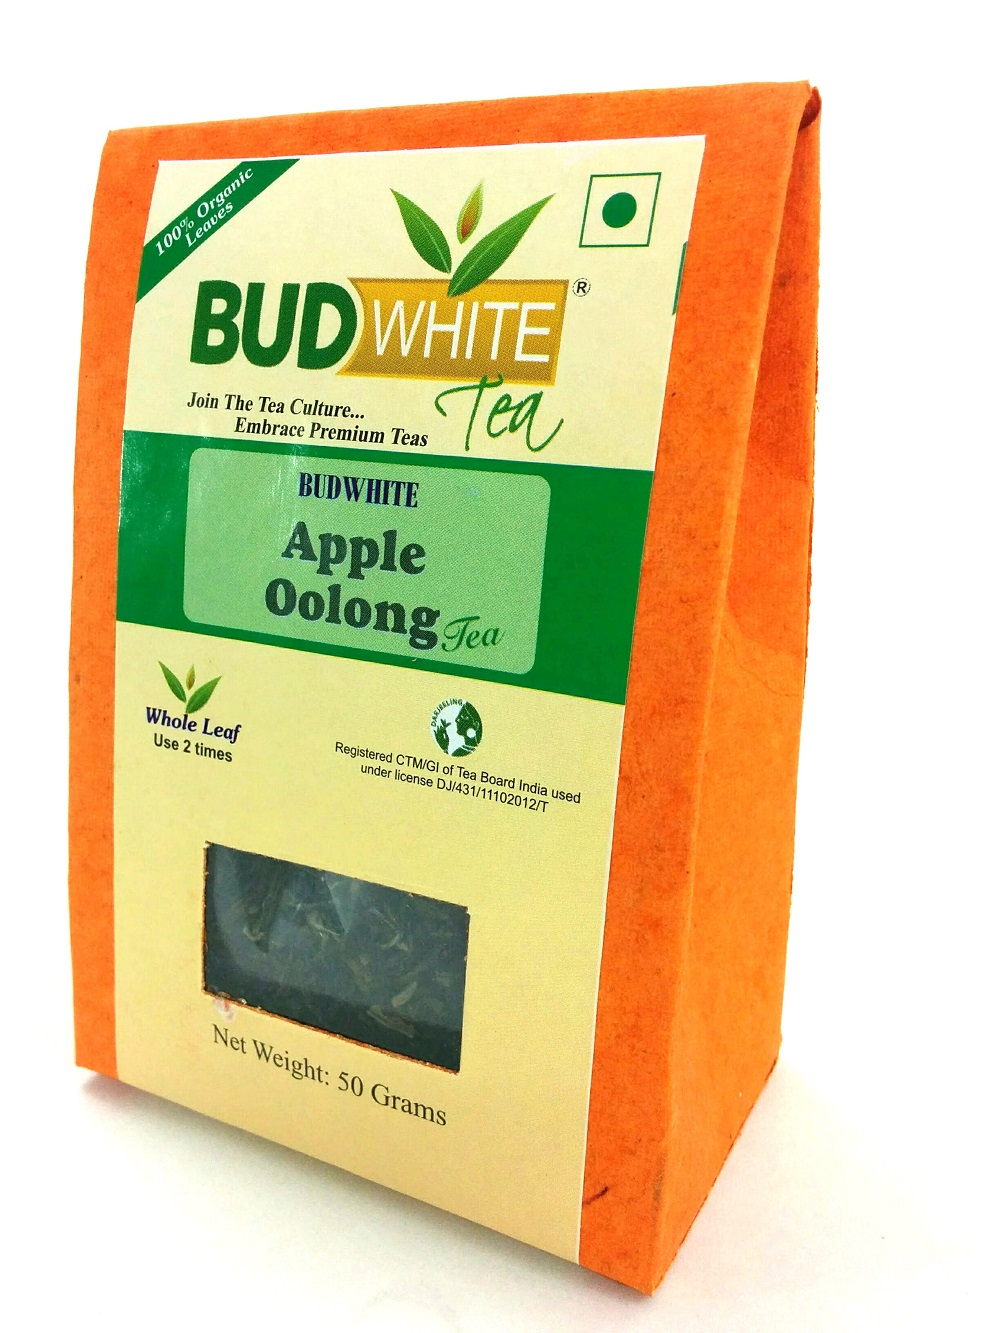 Apple Oolong Organic Whole Leaf Tea